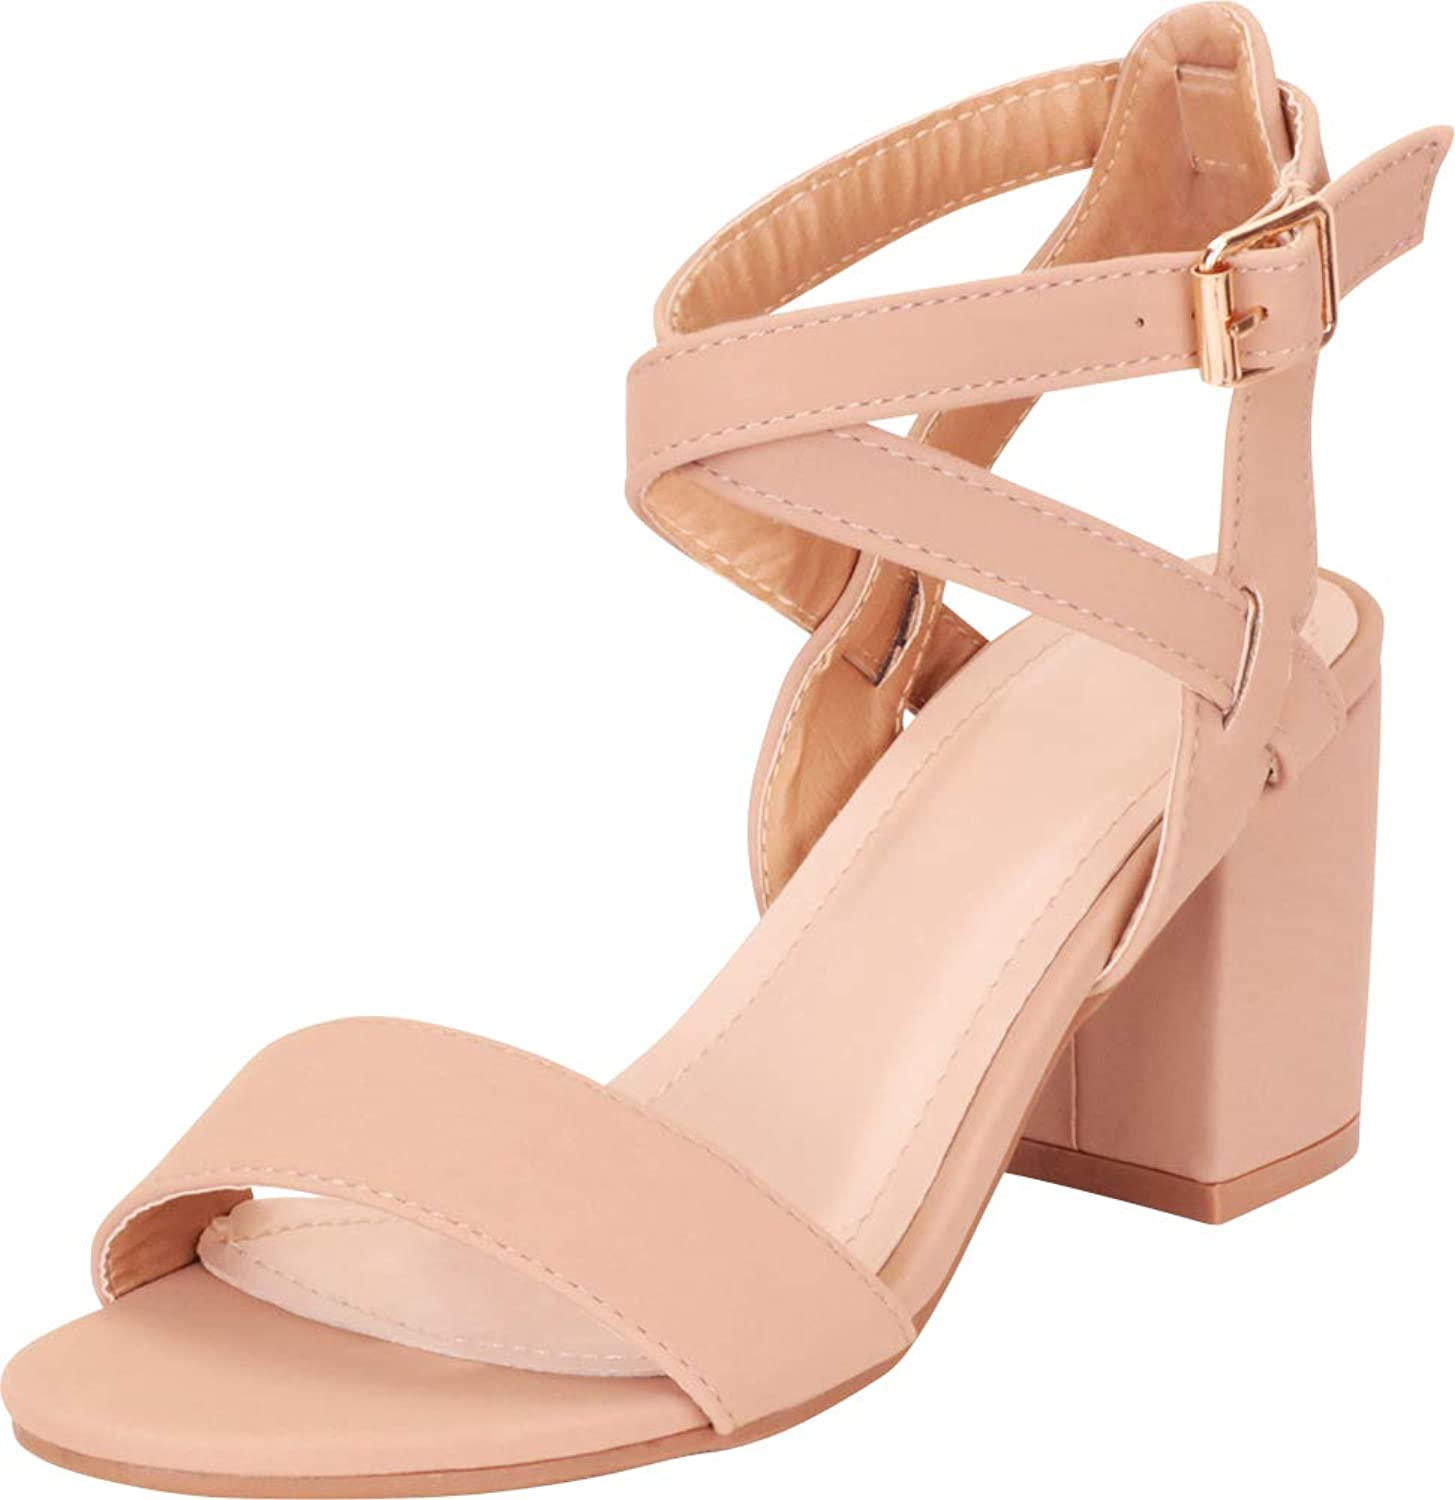 0d3330fd02f3d Cambridge Select Women's Open Toe Ankle Strappy Chunky Block Mid ...